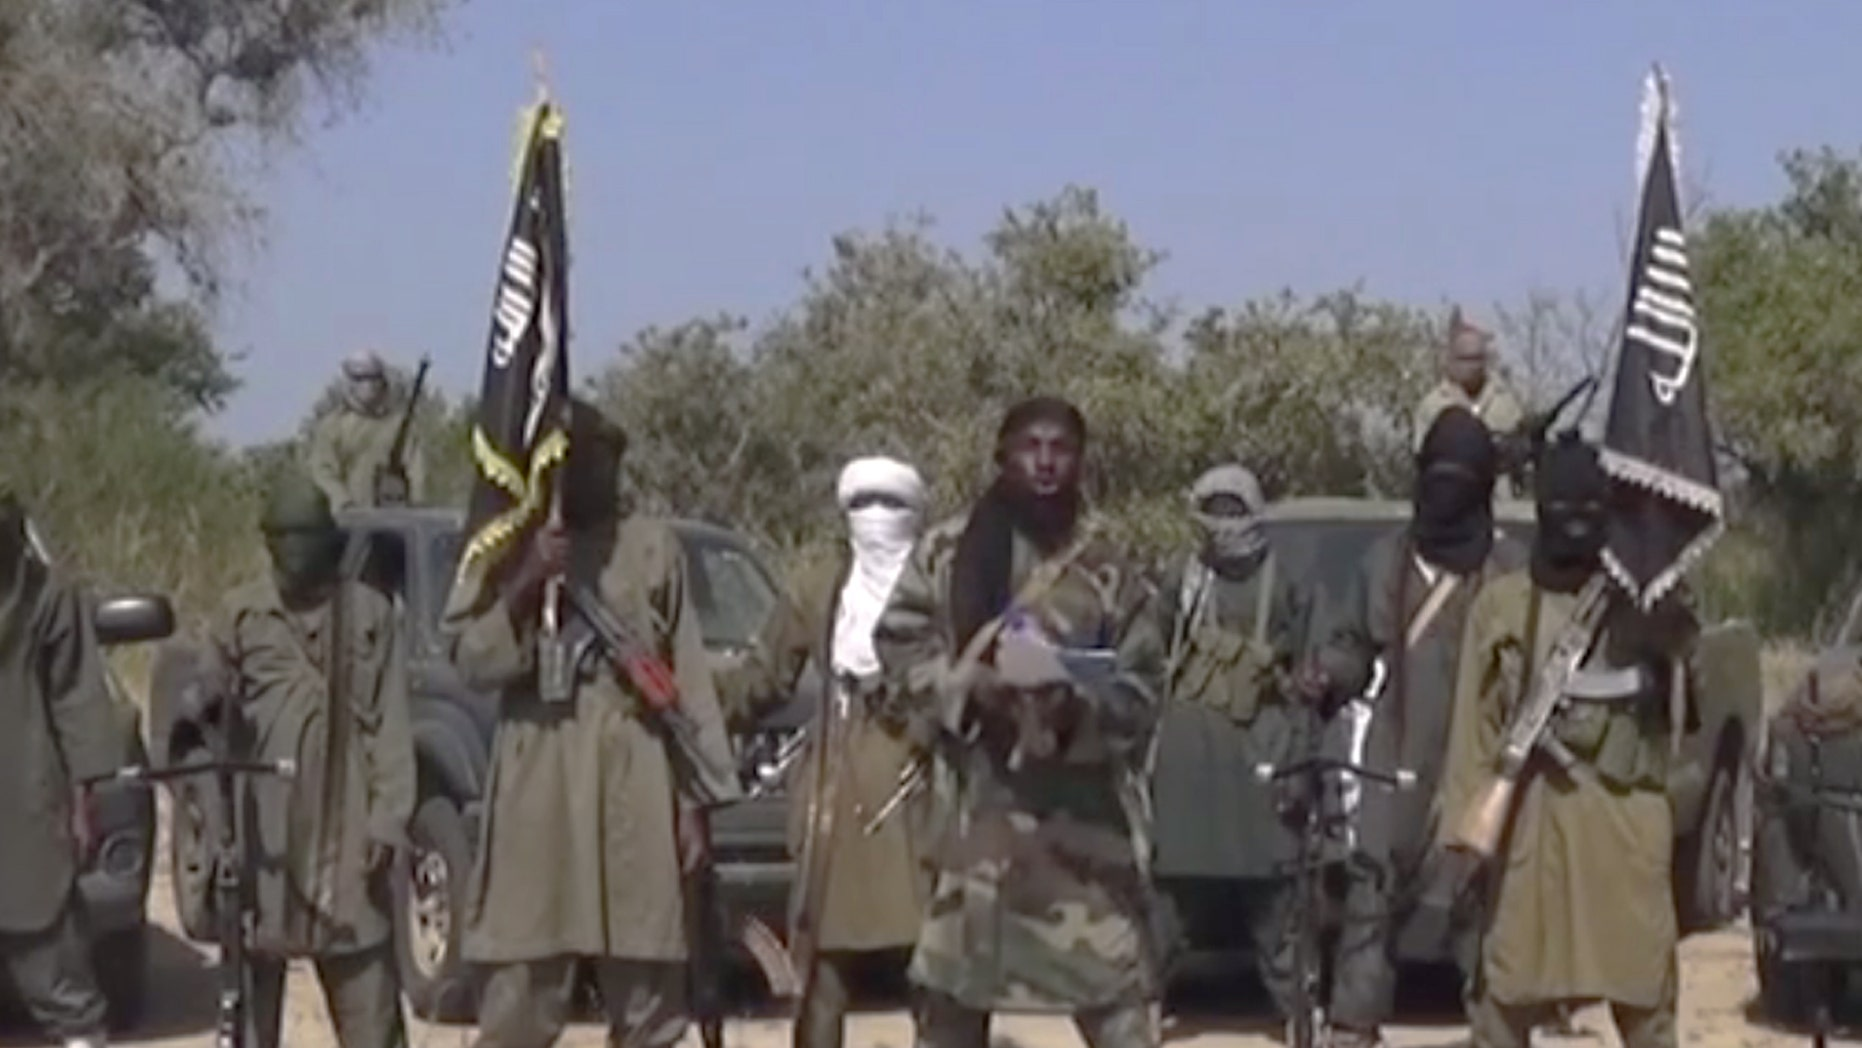 Oct. 31, 2014 - FILE photo of members of Nigeria's Islamic extremist group Boko Haram, Islamic extremists from Nigeria attacked a border town inside Niger, marking the 2nd foreign country attacked by the group in several days.